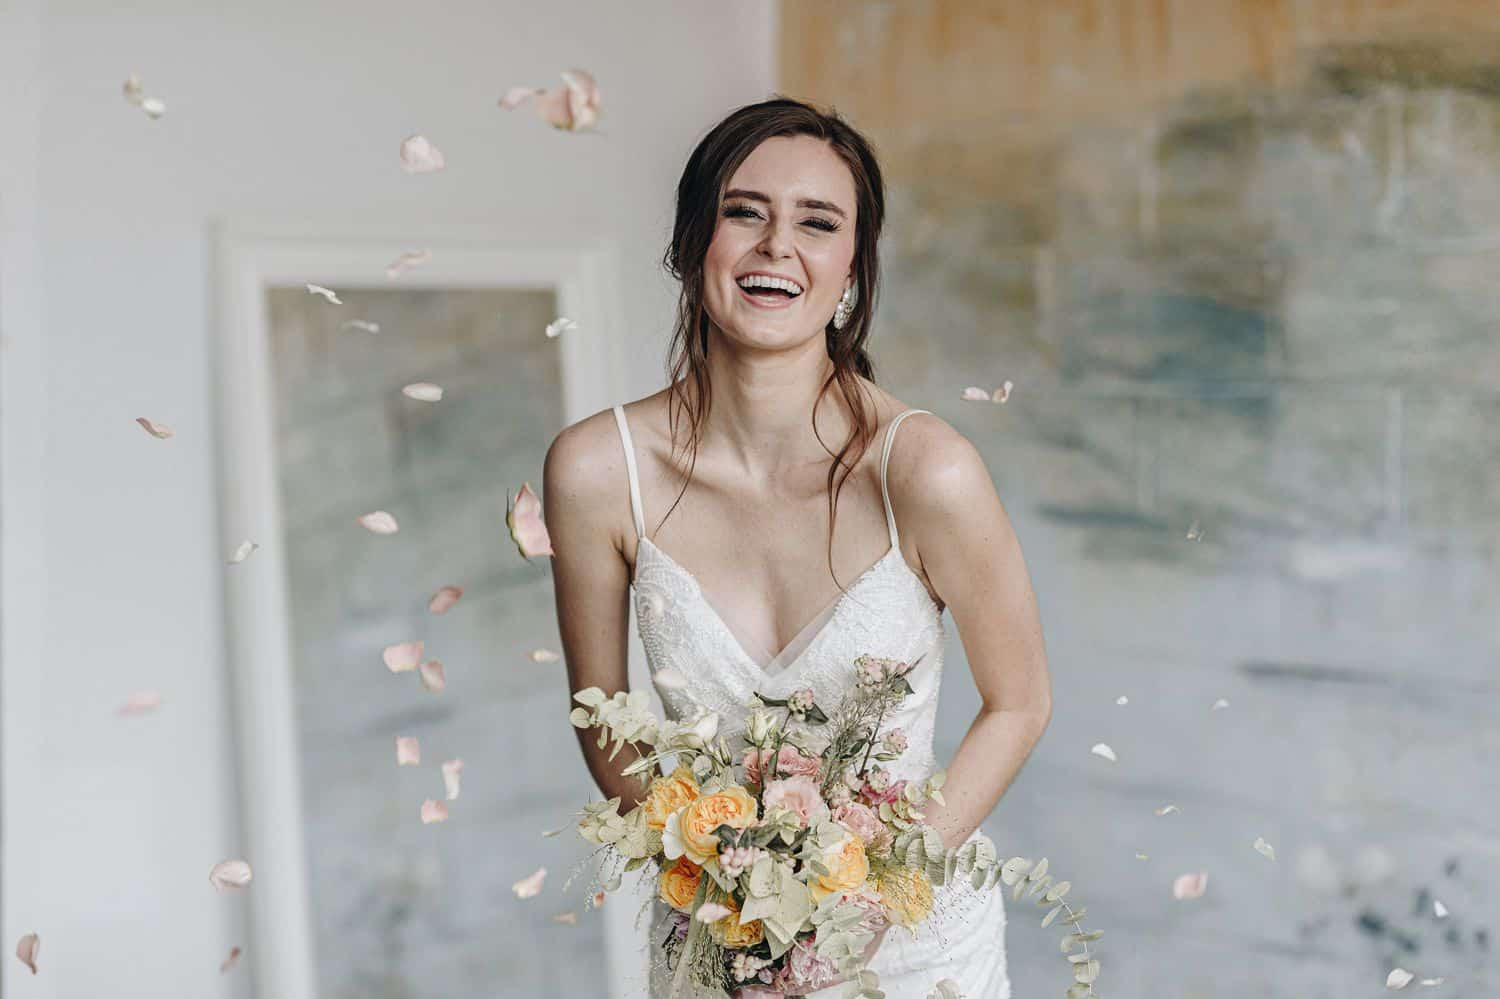 A brunette bride in a spaghetti strap wedding gown holds her bouquet and leans toward the camera laughing.